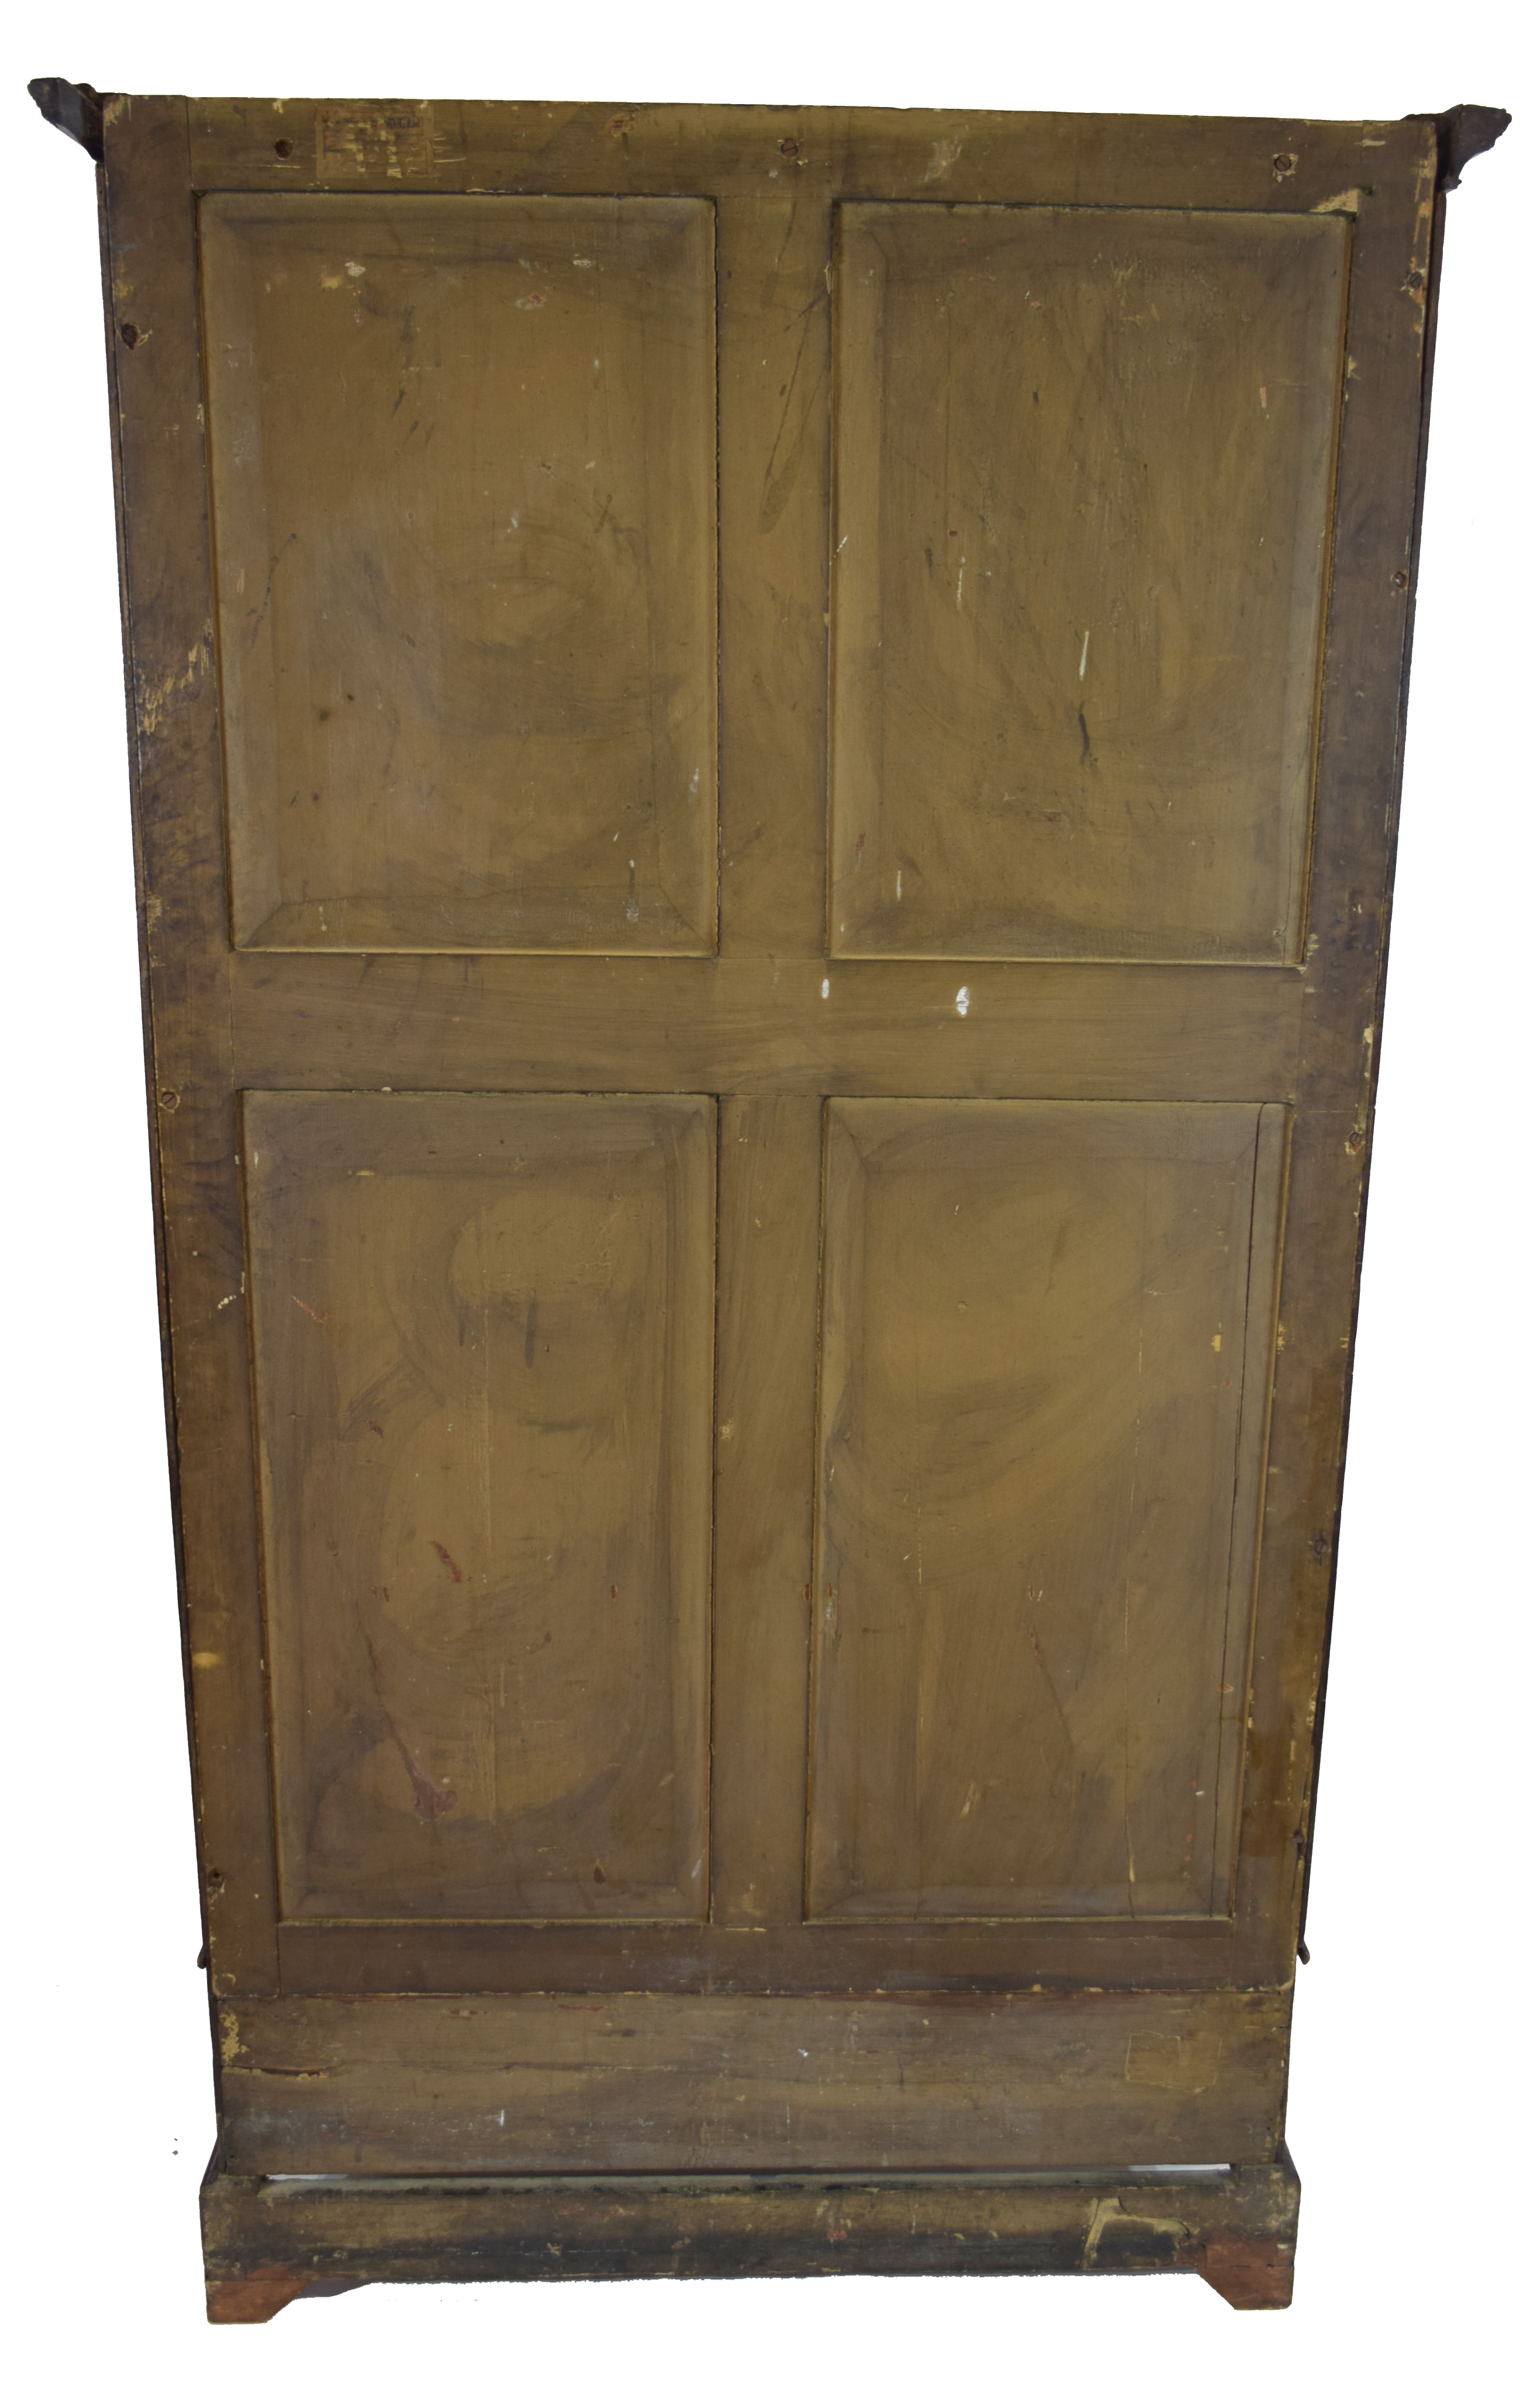 19th century mahogany wardrobe with moulded cornice over two panelled doors and single drawer - Image 6 of 6